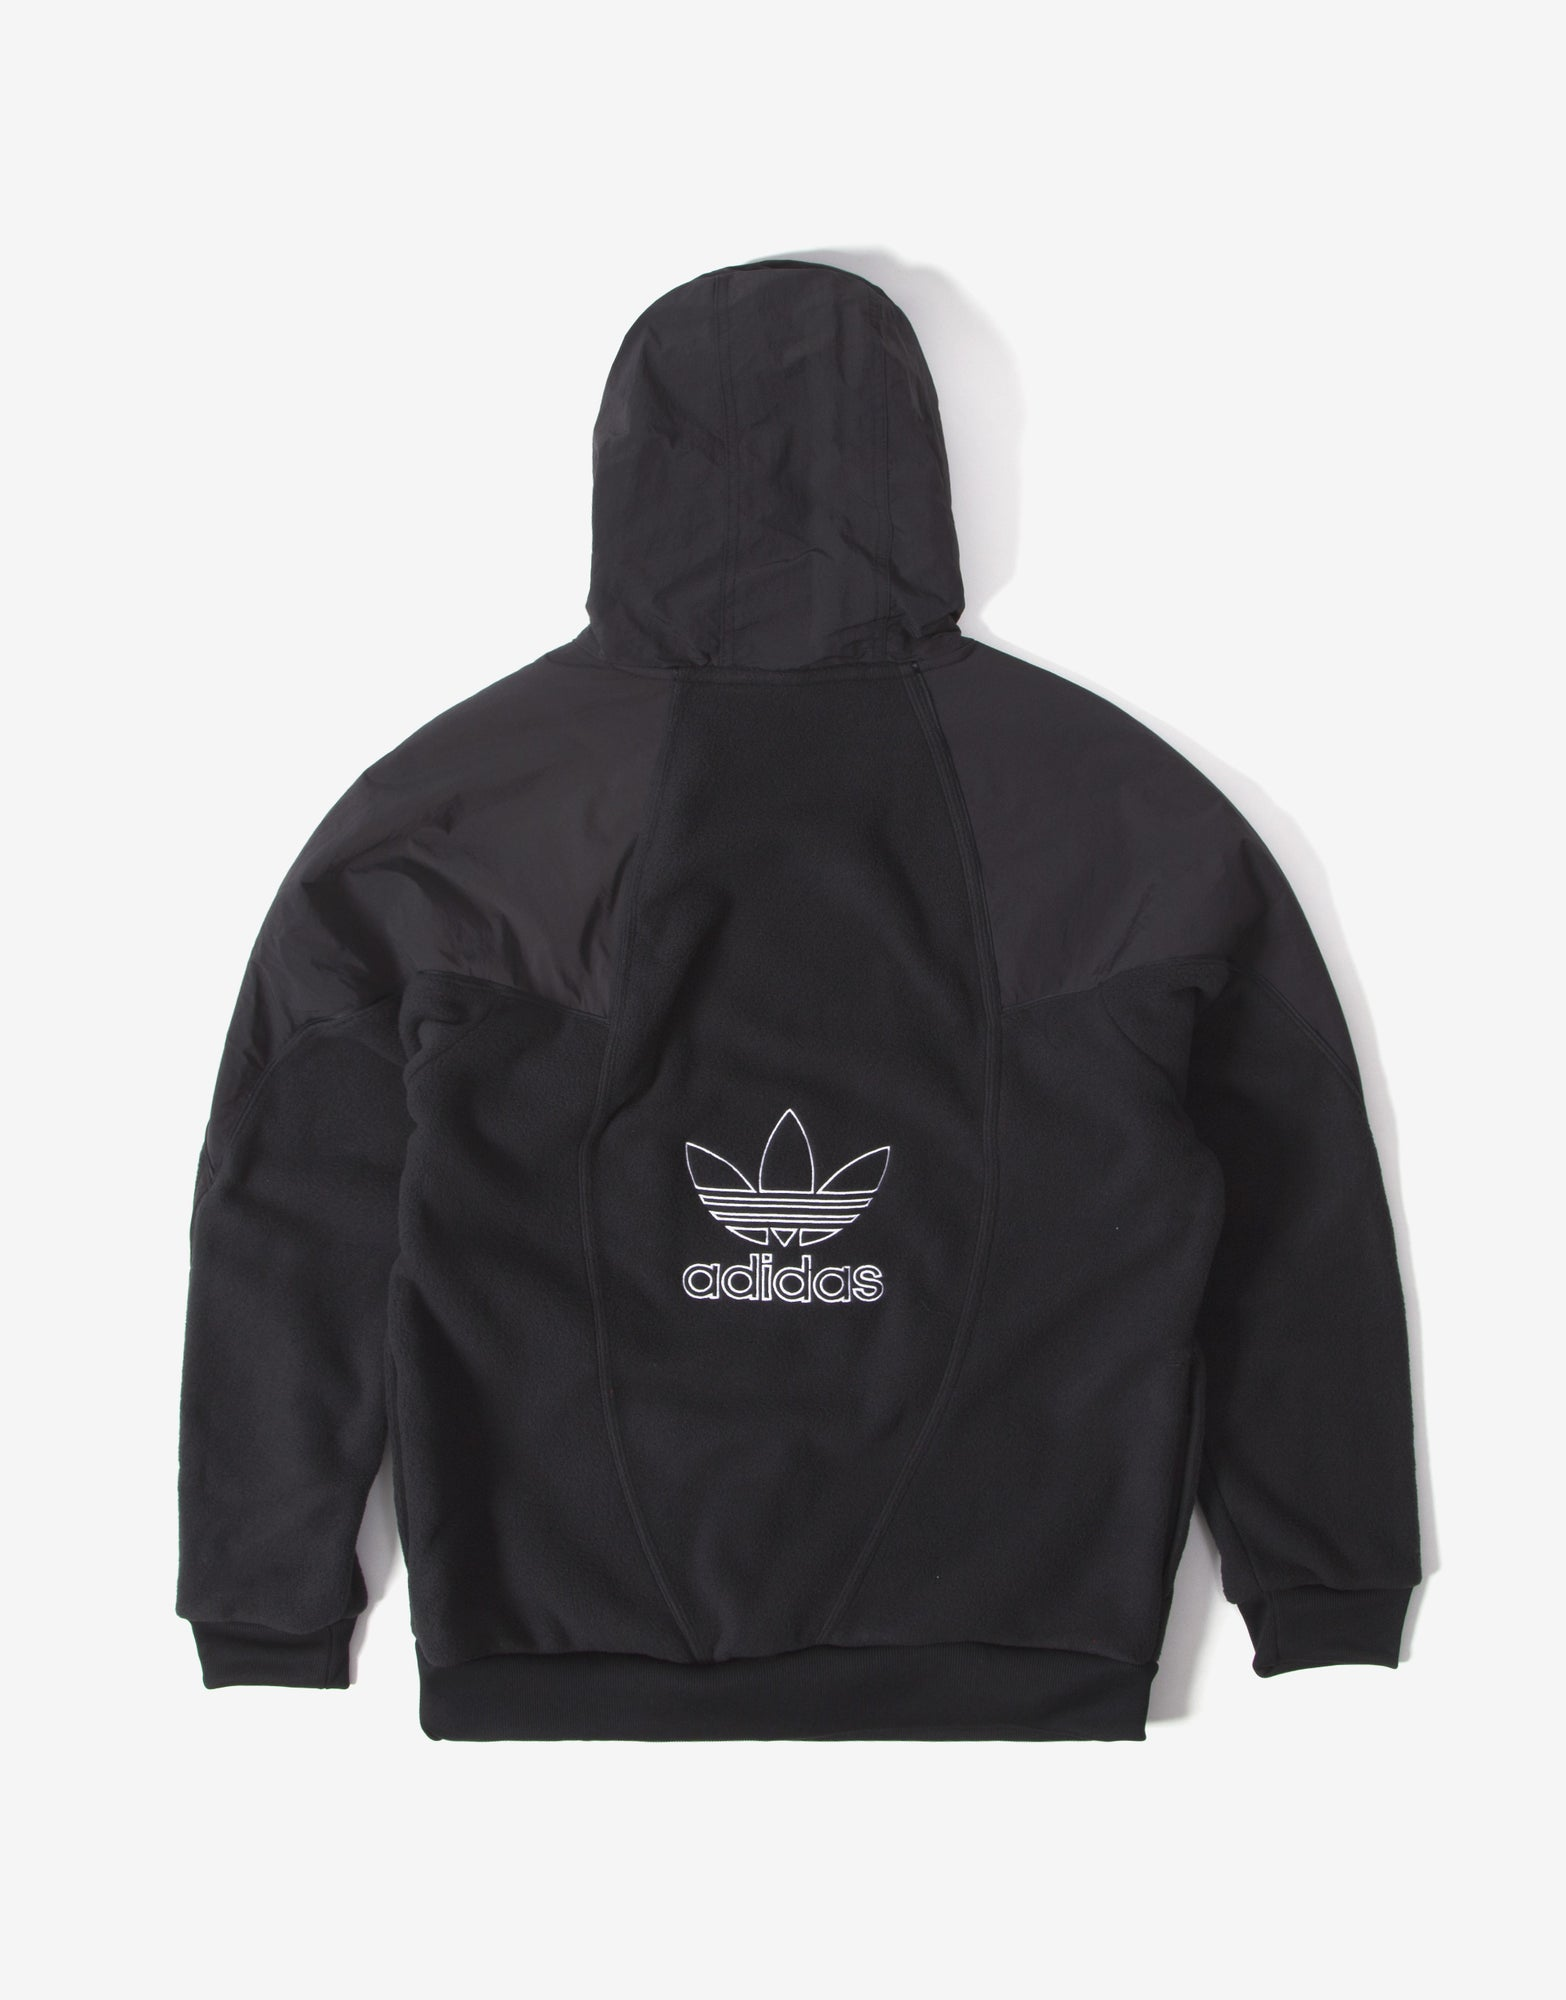 adidas Originals BG TRF Mix Hoody - Black